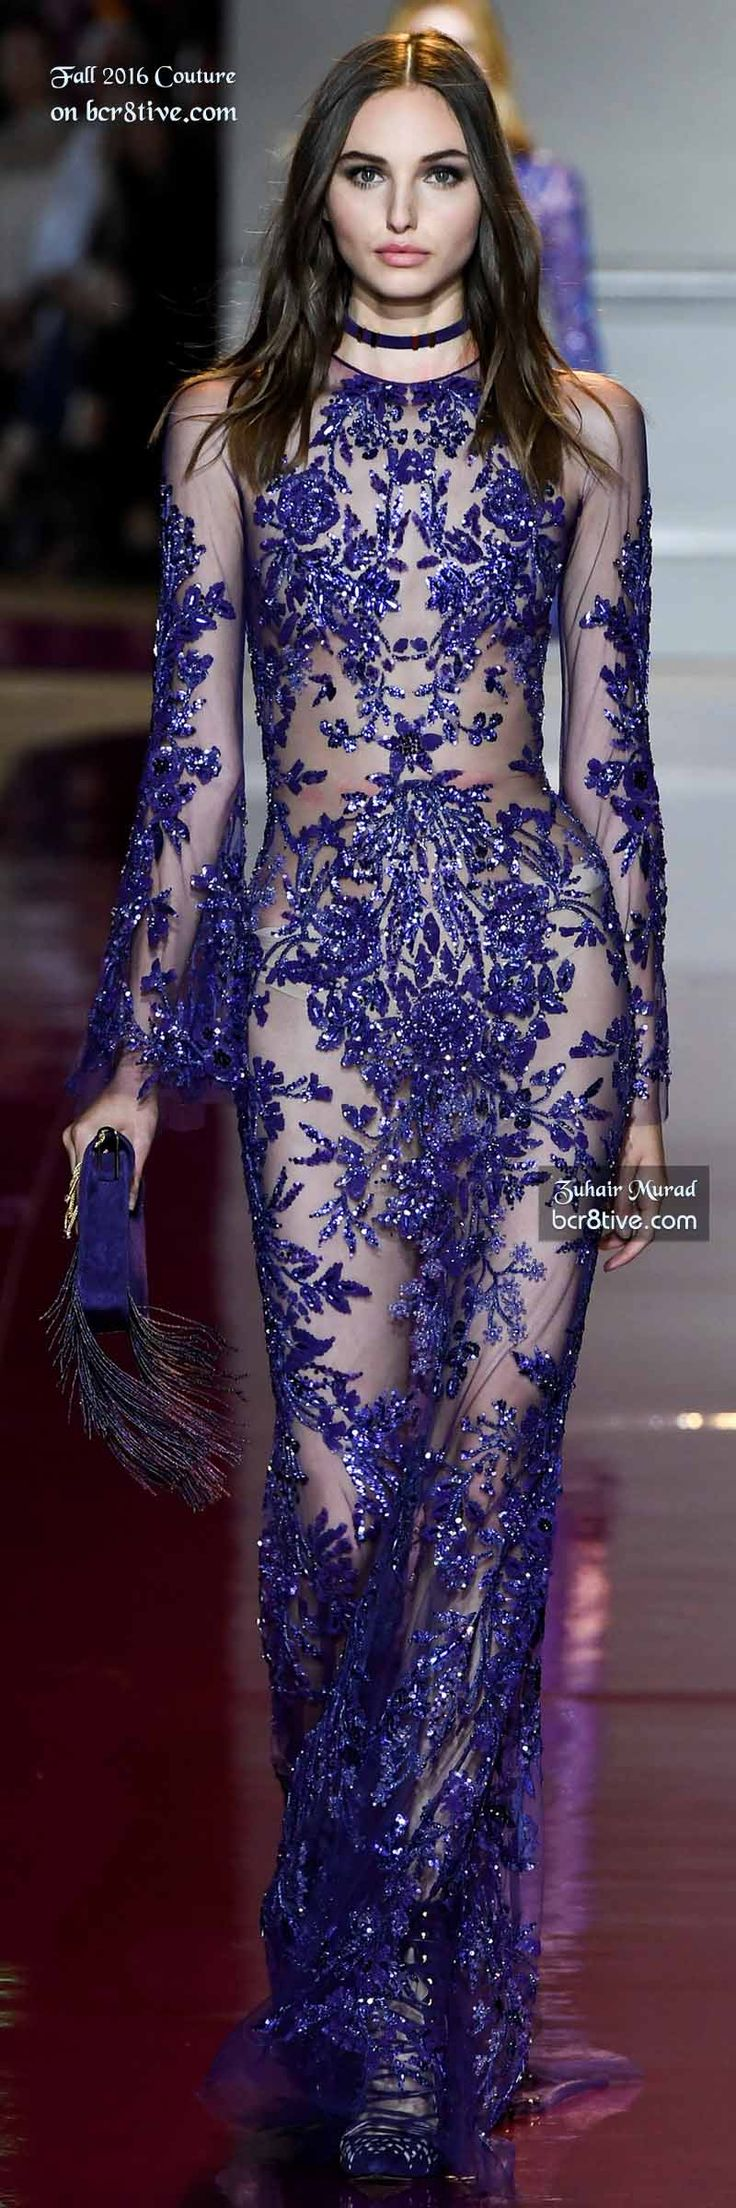 611 best Haute couture images on Pinterest | Couture, Fashion ...